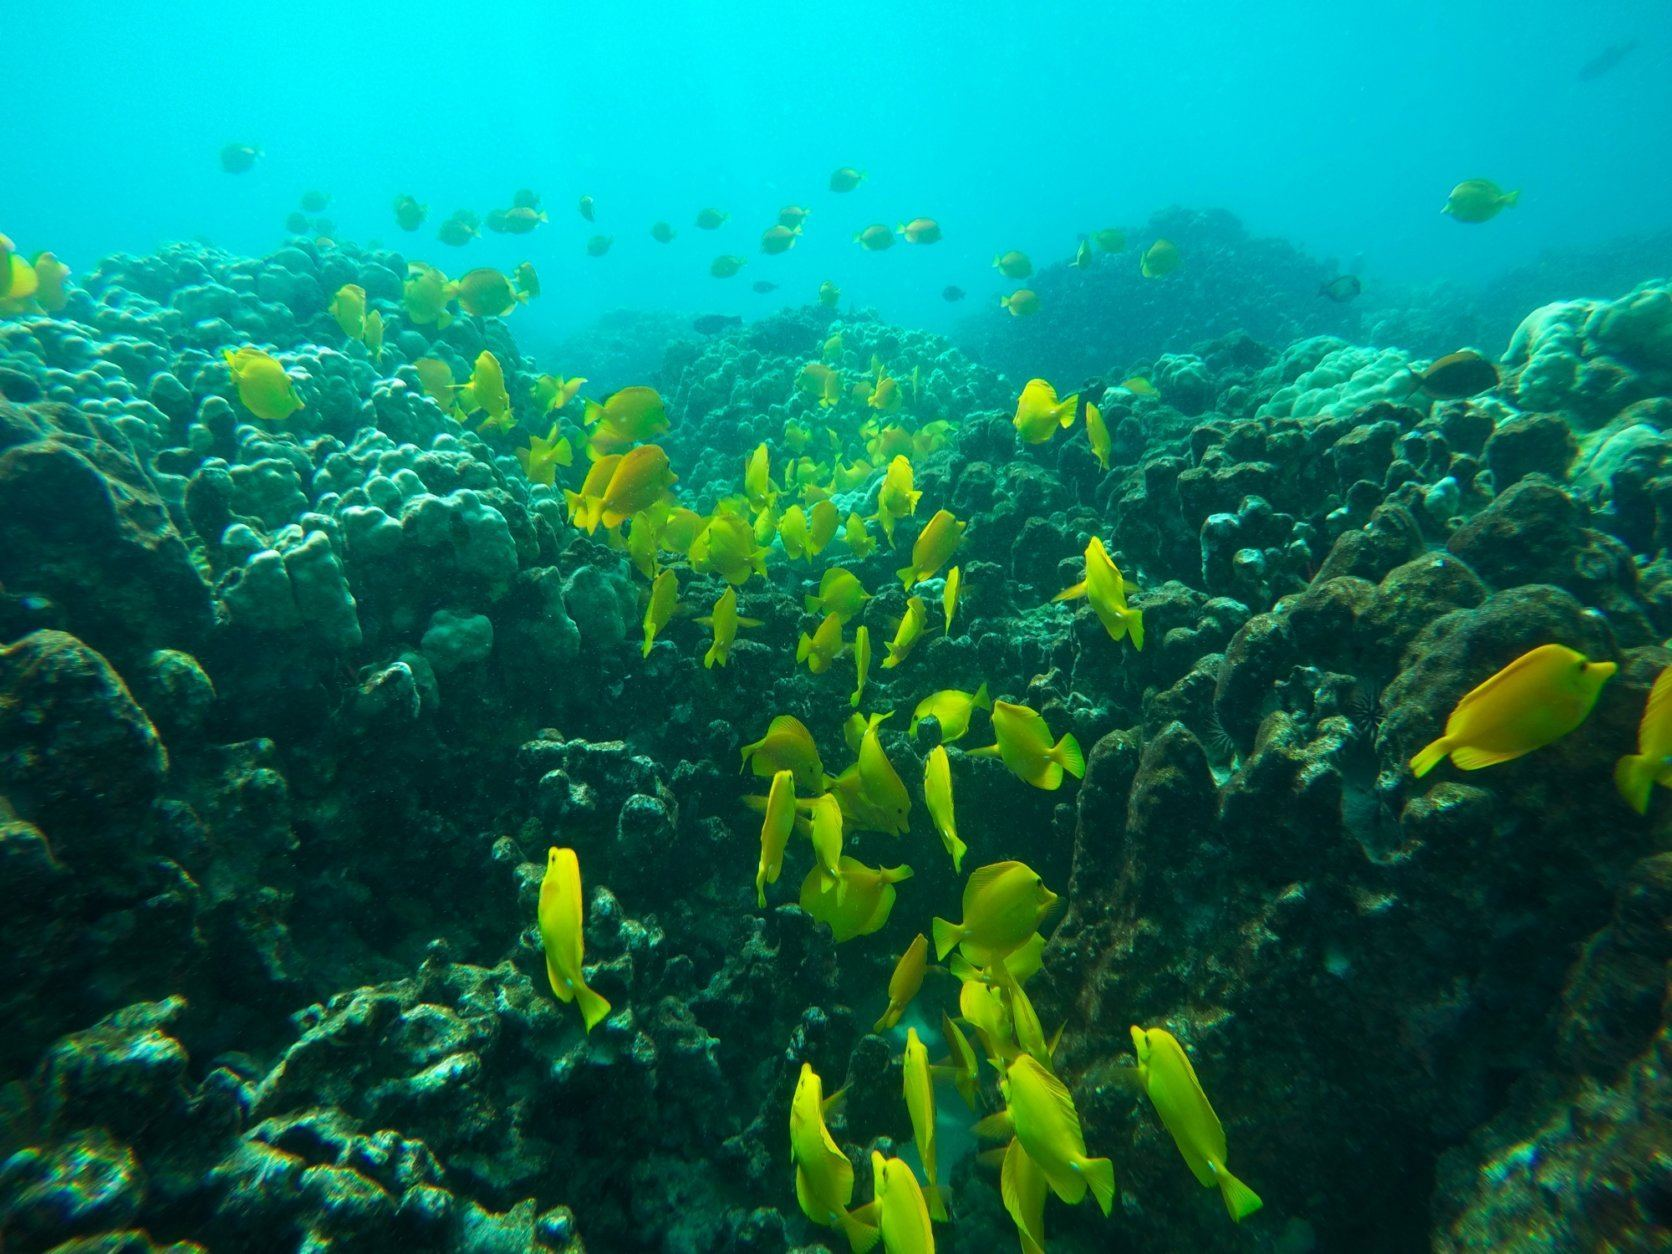 This Sept. 12, 2019 photo shows fish near coral in a bay on the west coast of the Big Island near Captain Cook, Hawaii. Just four years after a major marine heat wave killed nearly half of this coastline's coral, federal researchers are predicting another round of hot water will cause some of the worst coral bleaching the region has ever seen.  (AP Photo/Brian Skoloff)